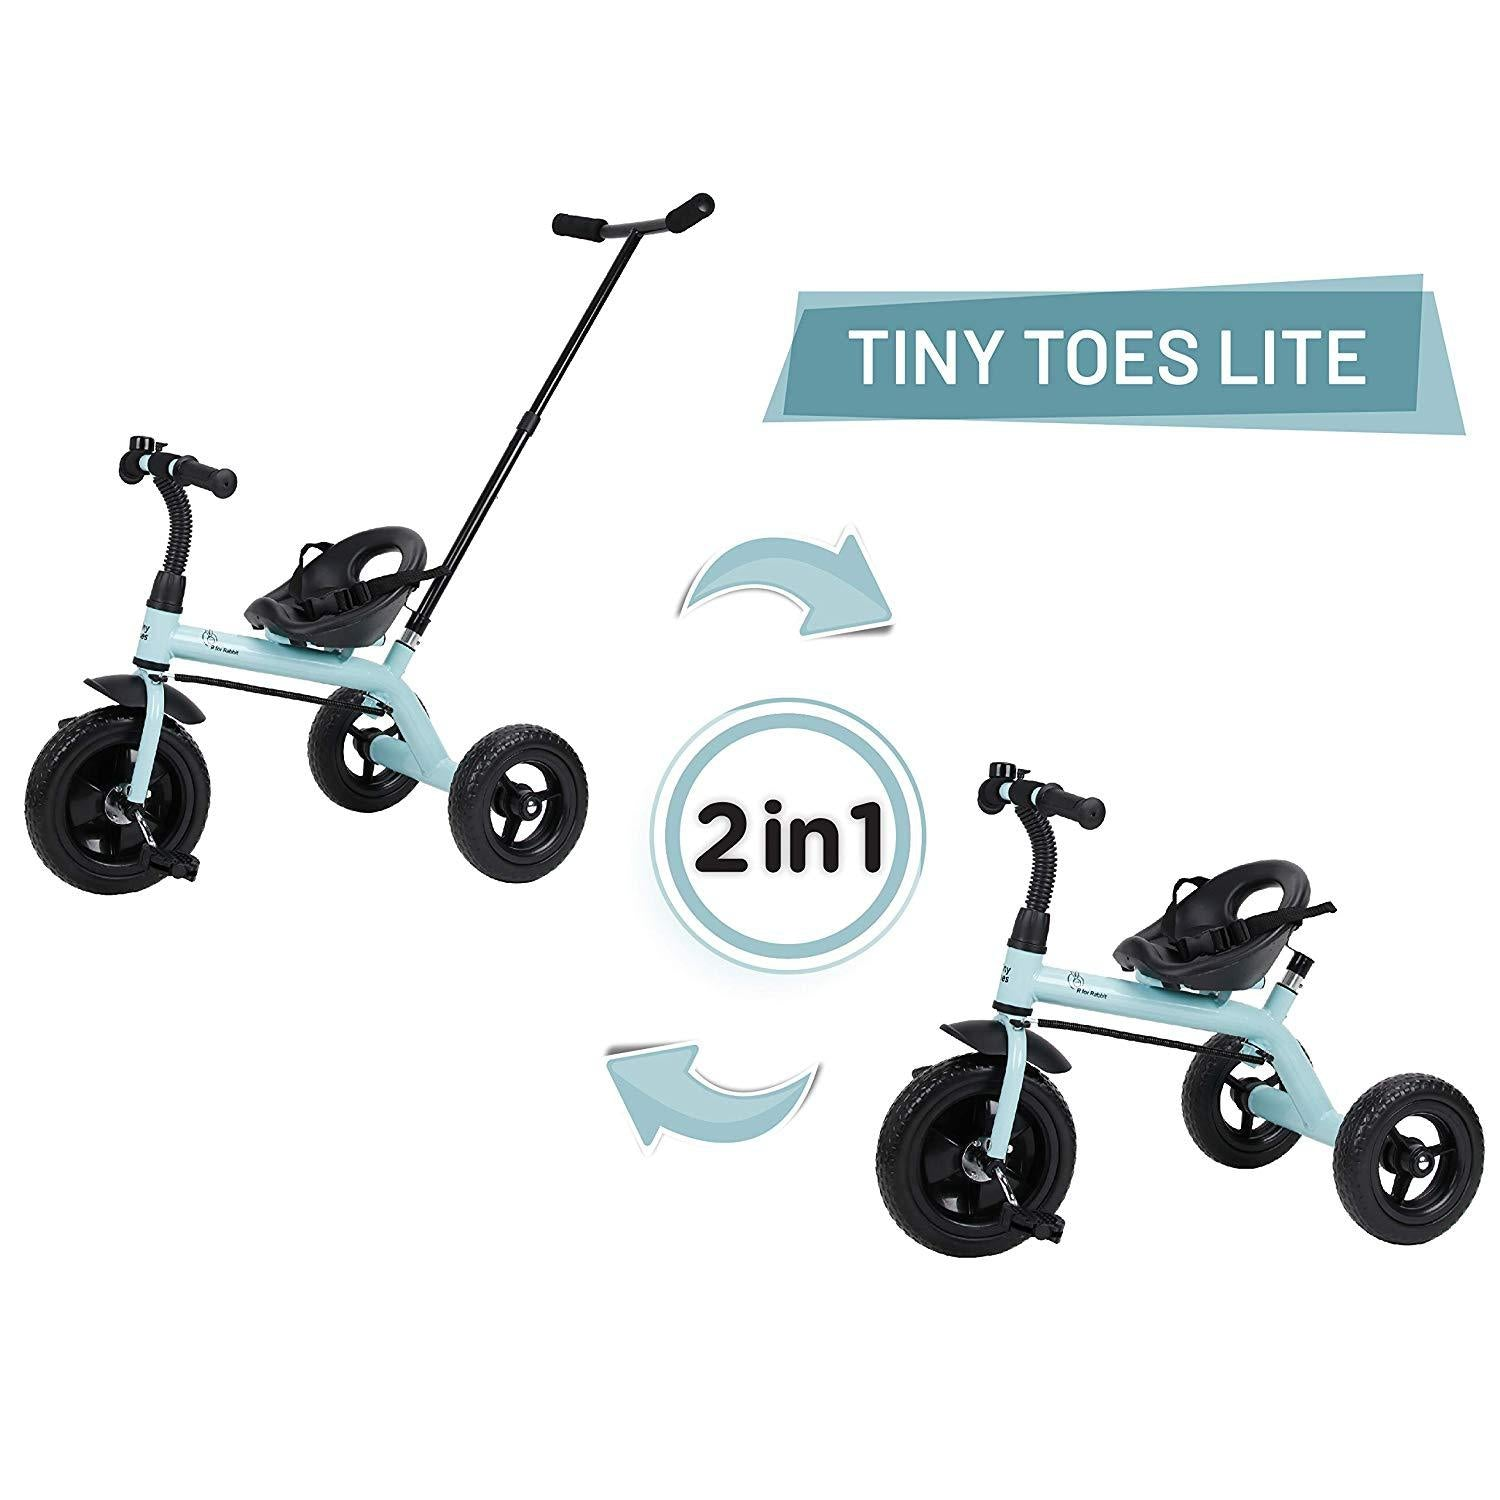 R for Rabbit Tiny Toes Lite Baby Tricycle for Kids  for 1.5 to 5 Years